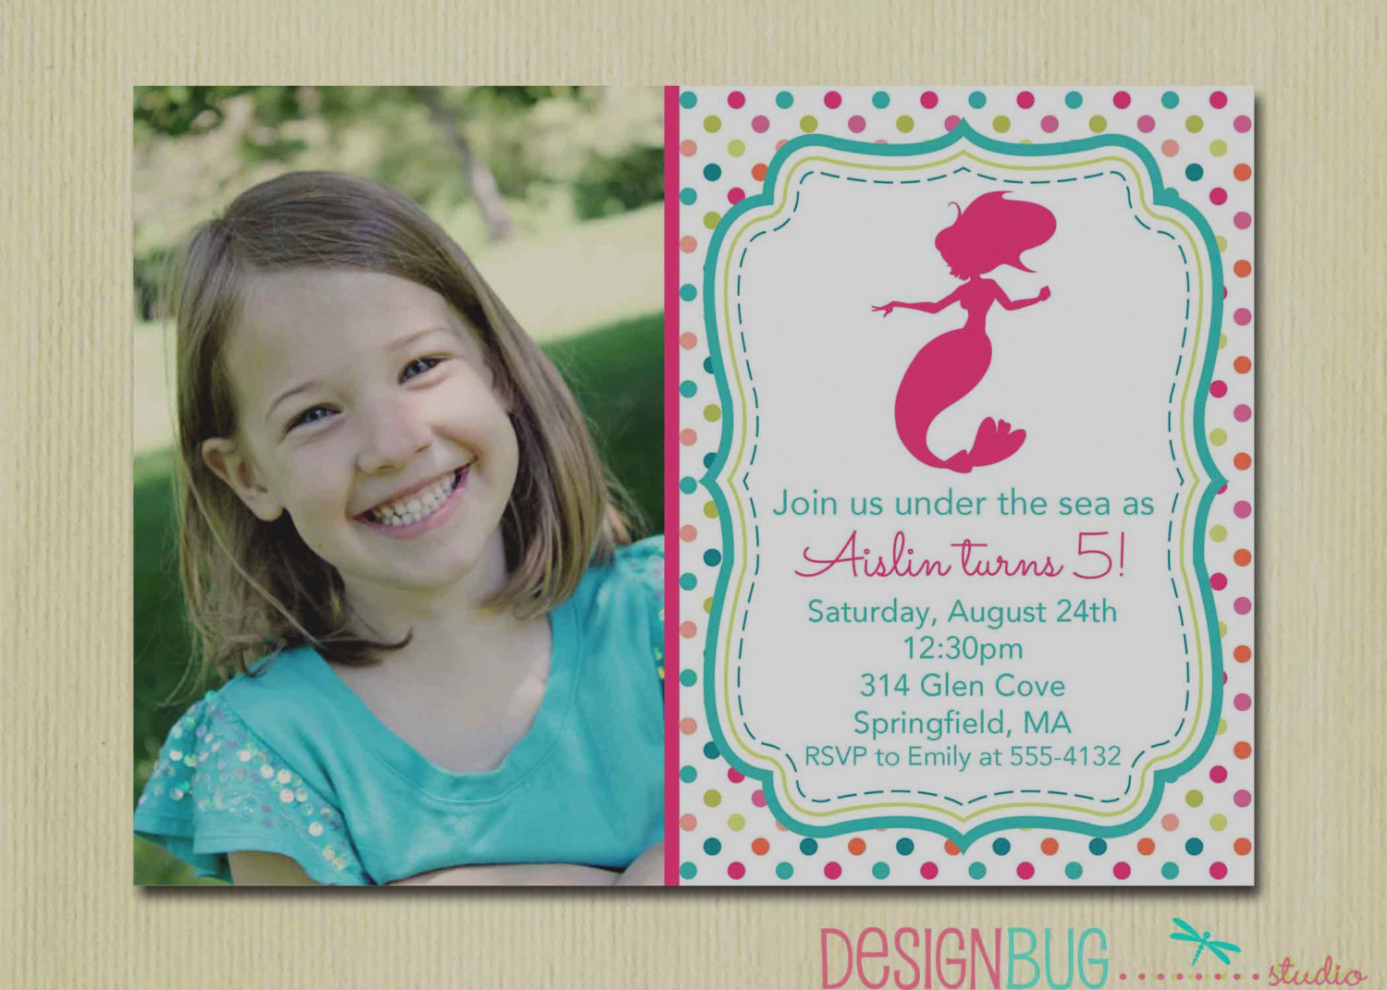 birthday invitation for 4 year old boy ; gallery-birthday-invitation-wording-for-5-year-old-boy-mermaid-1-2-3-4-any-age